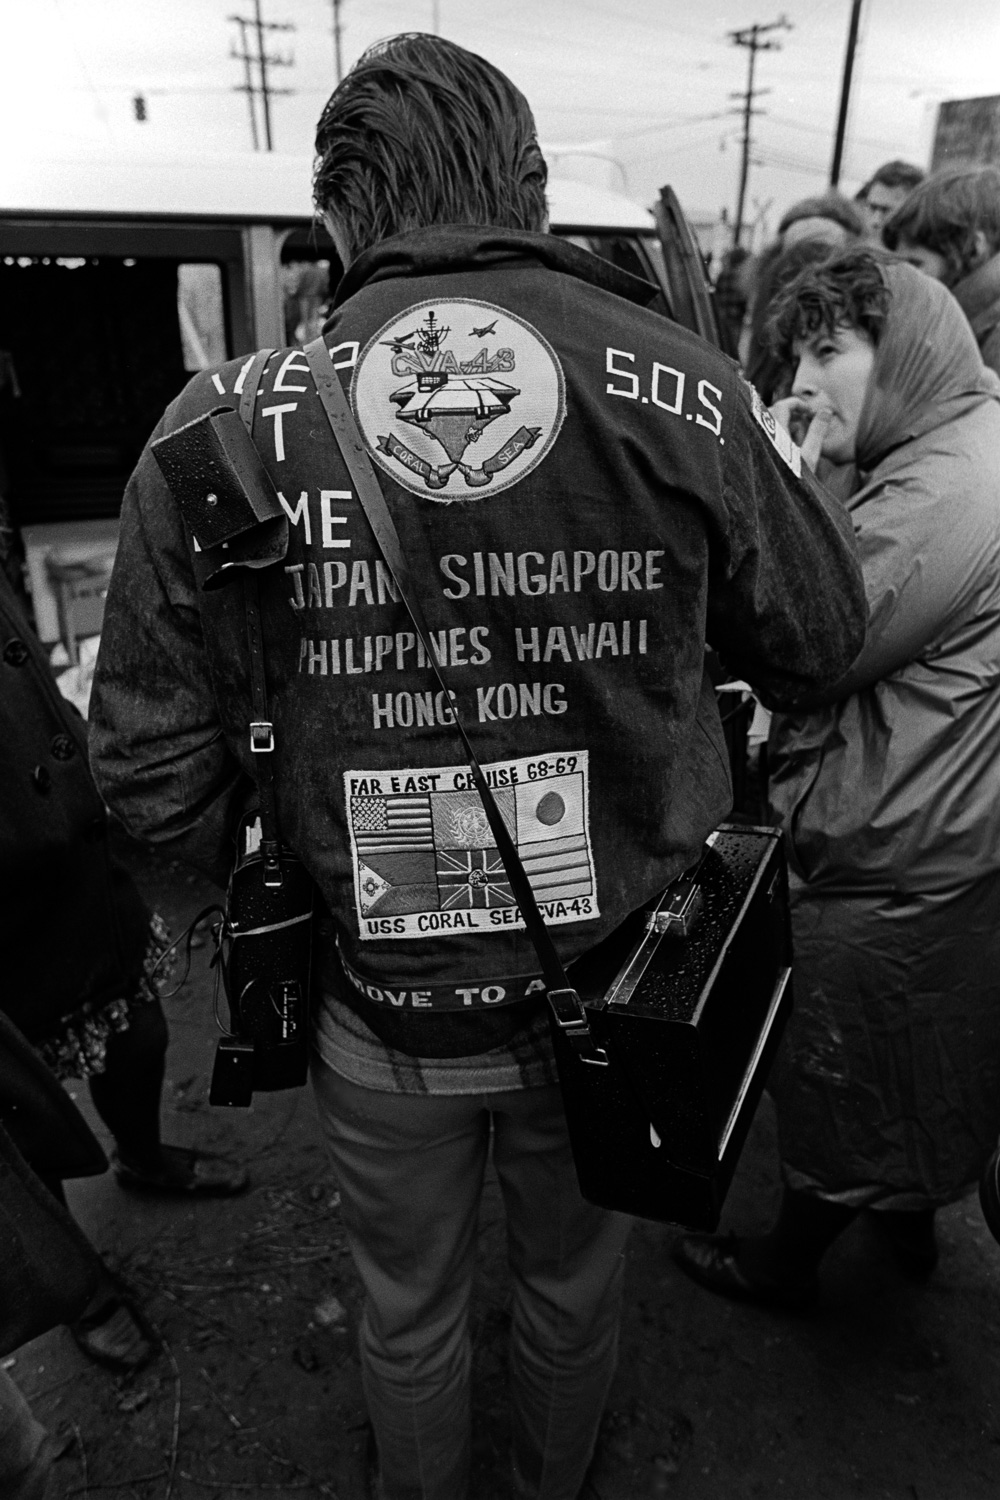 """This sailor's jacket reflects the ports-of-call where his ship, the USS Coral Sea, has called. At the top of his jacket, he added: """"Keep it home. SOS."""""""